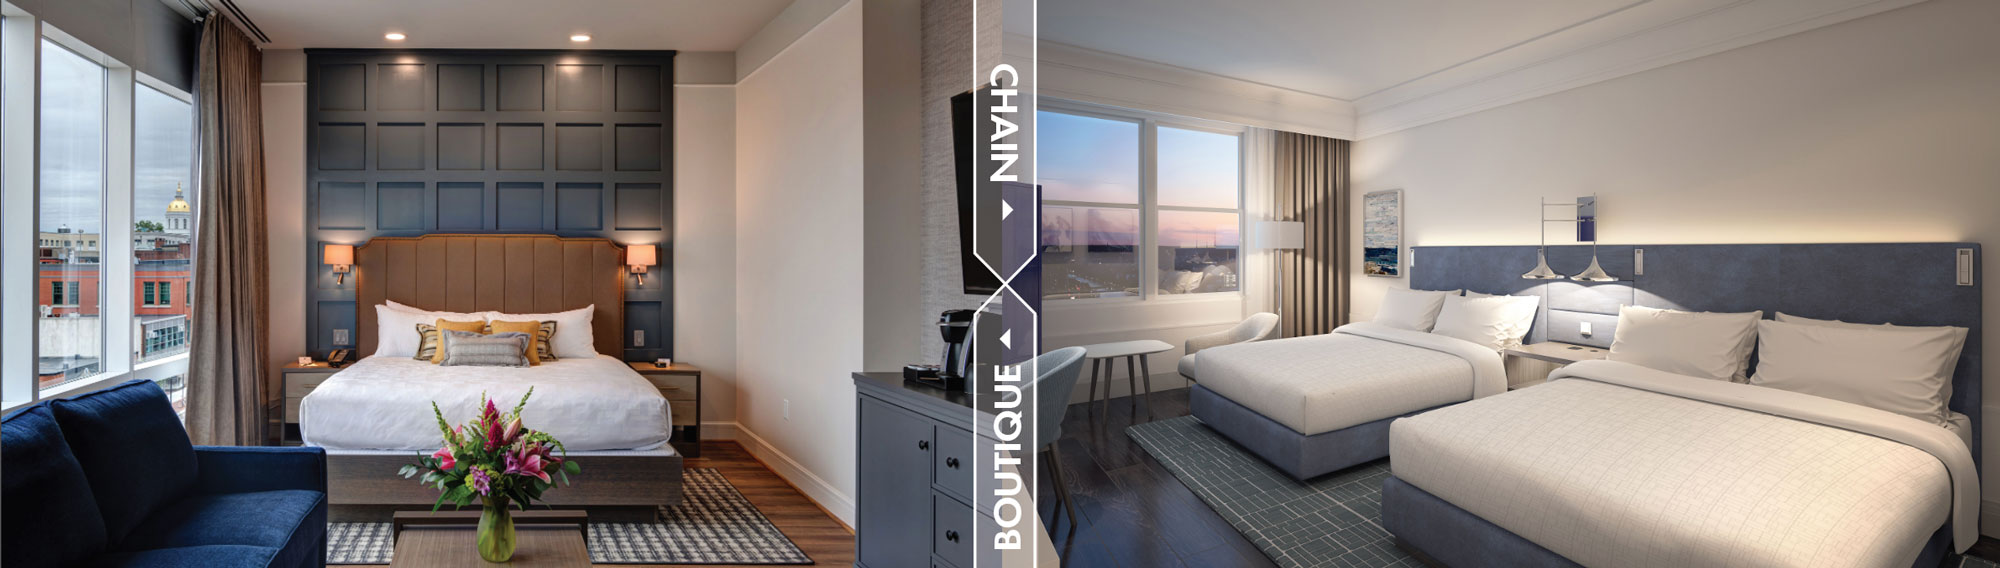 Boutique Hotels vs. Chain Hotels: Managing Renovation Costs